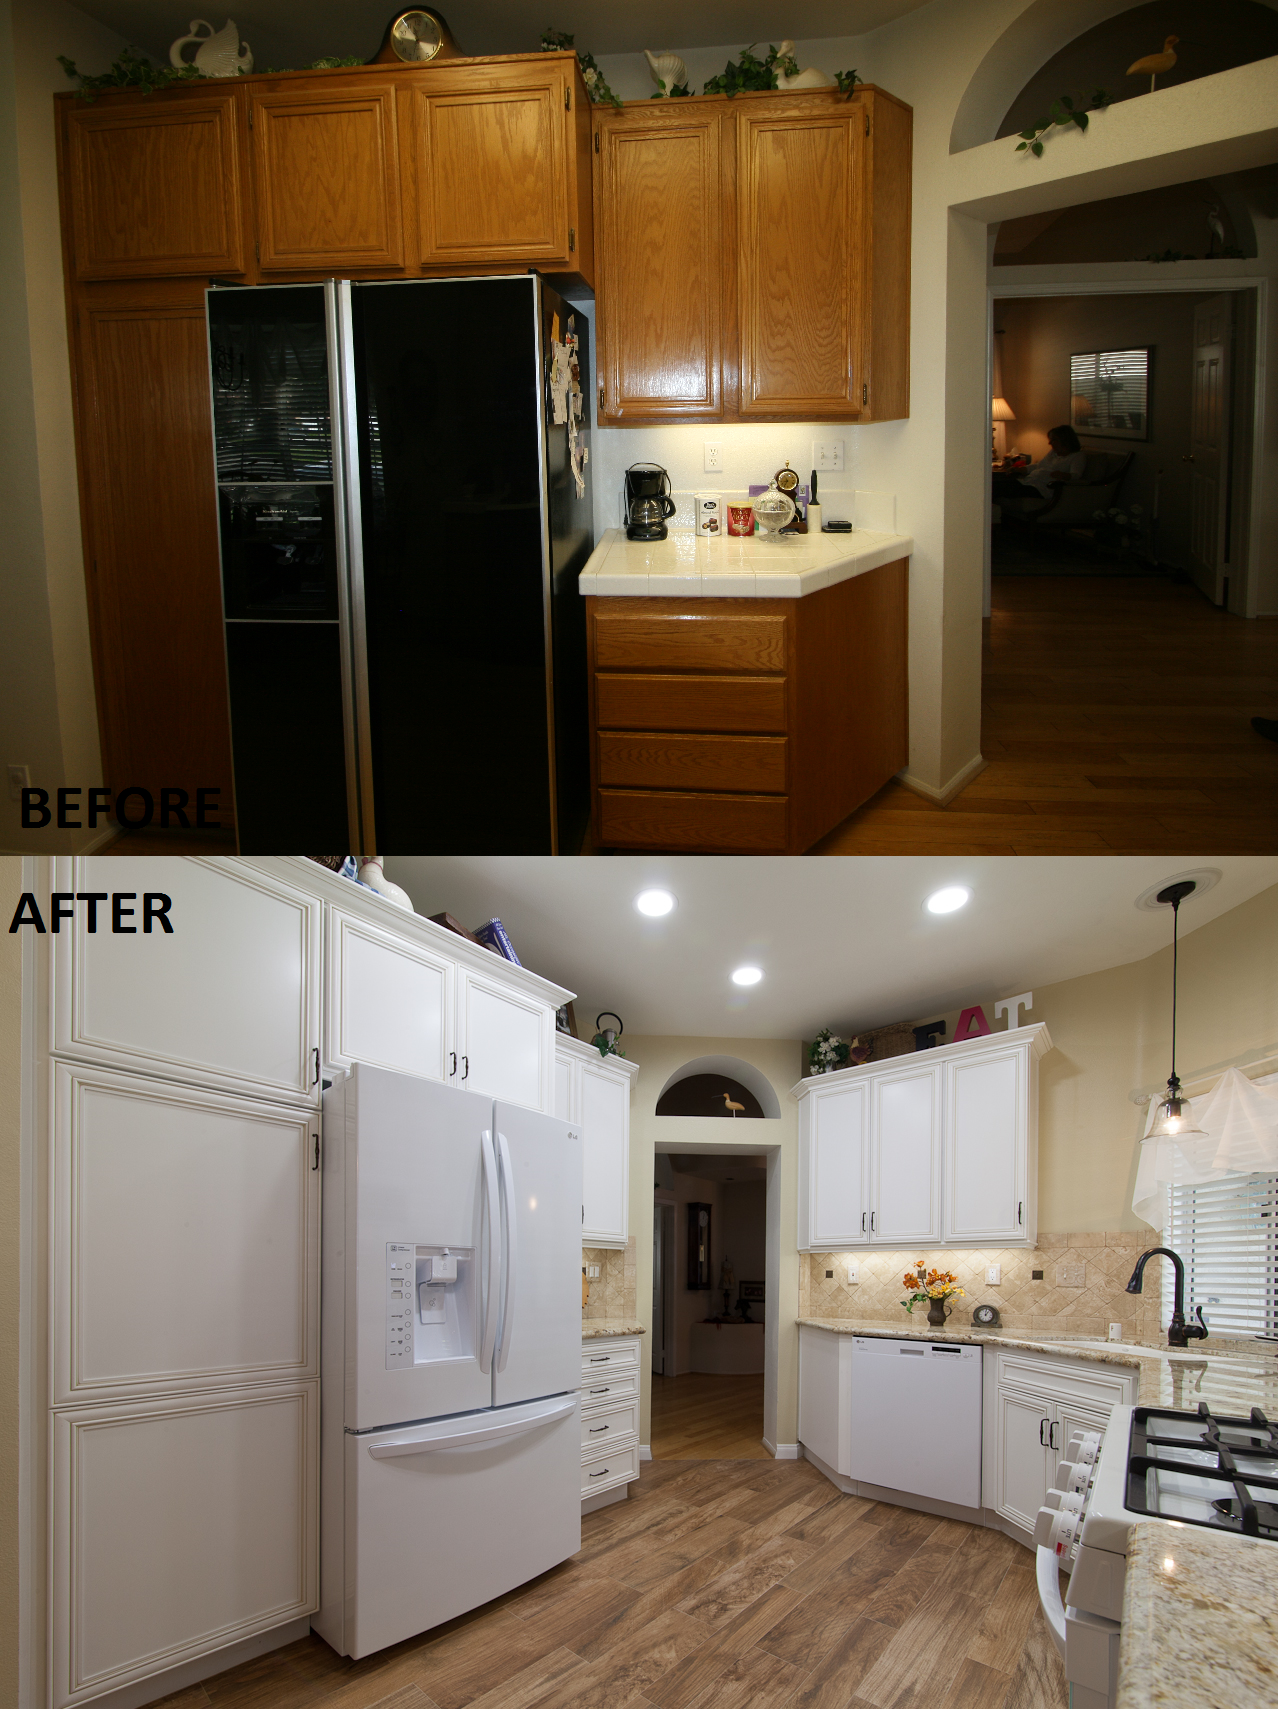 Kitchen Remodel Done By Kitchens Etc Of Ventura County. HomeCrest Cabinetry  In The Madison Door